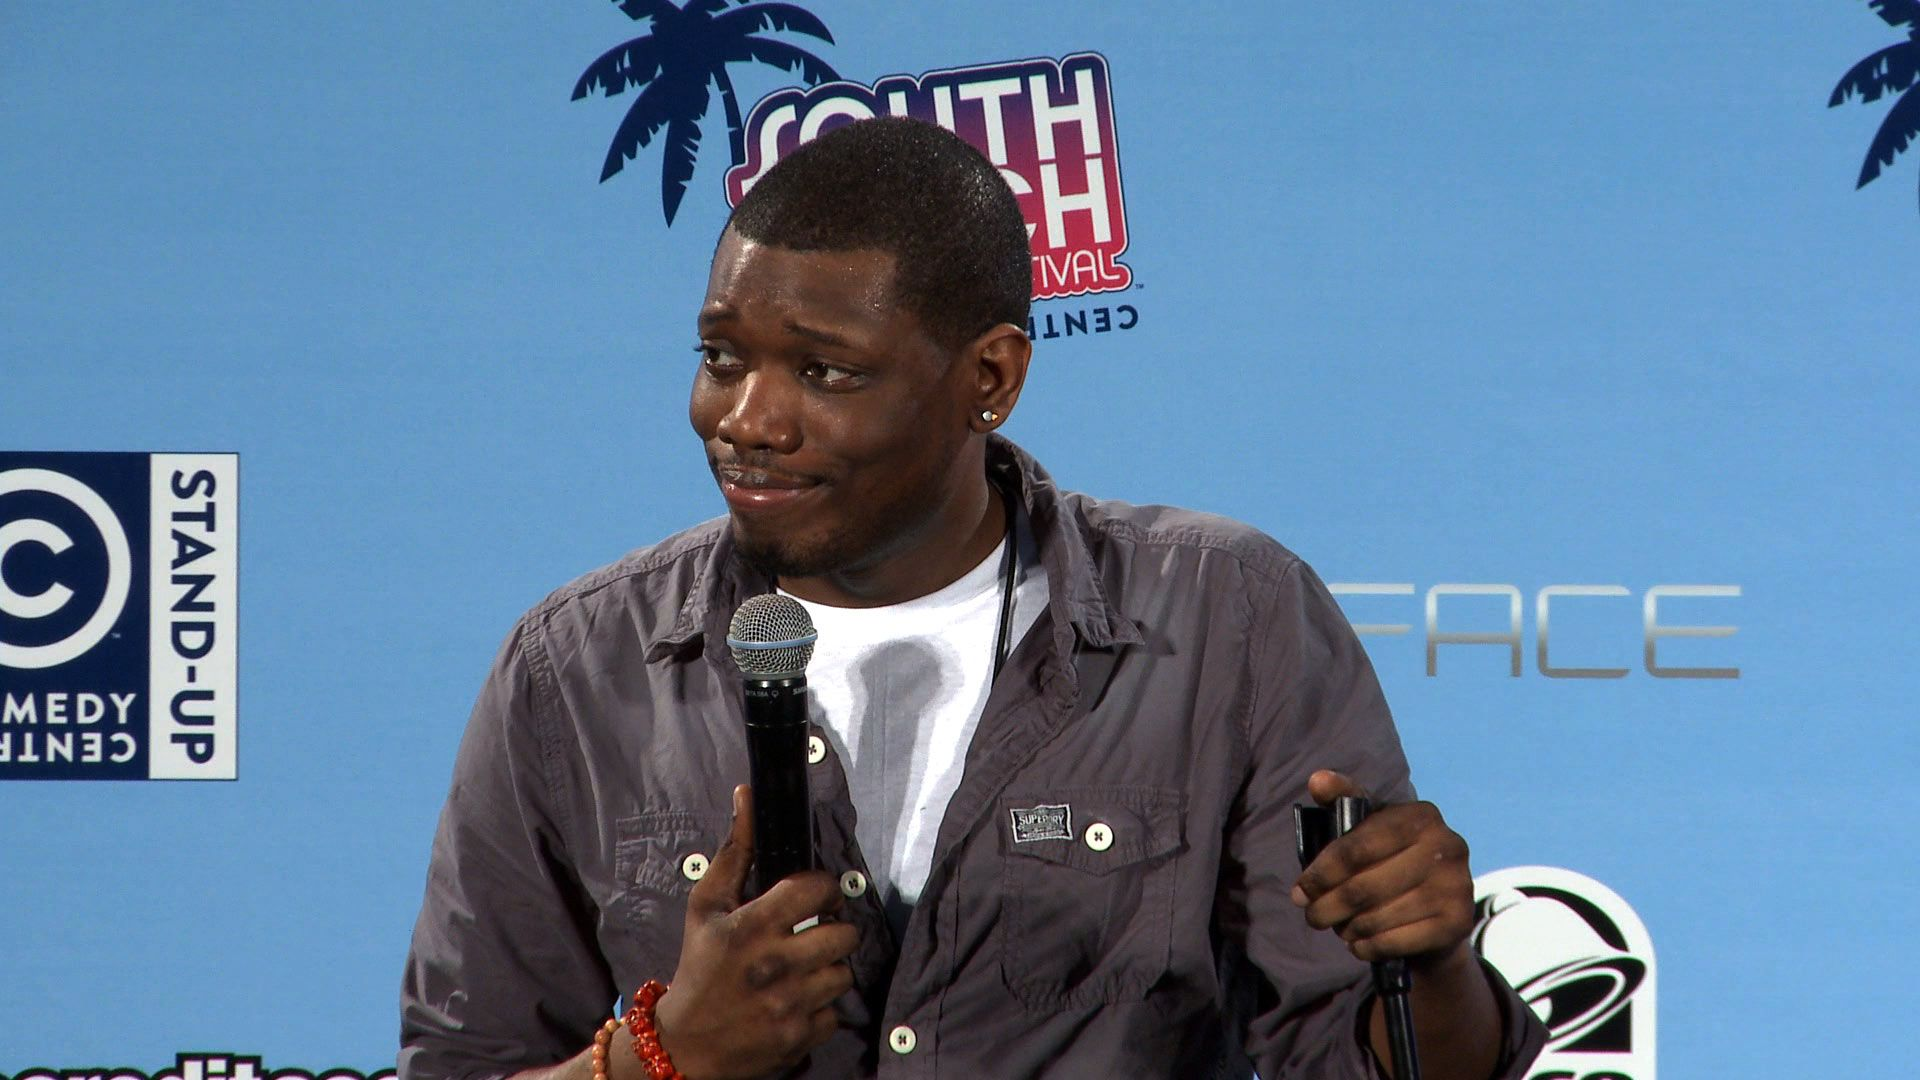 South Beach Comedy Festival: Michael Che - 50 Shades of Dude